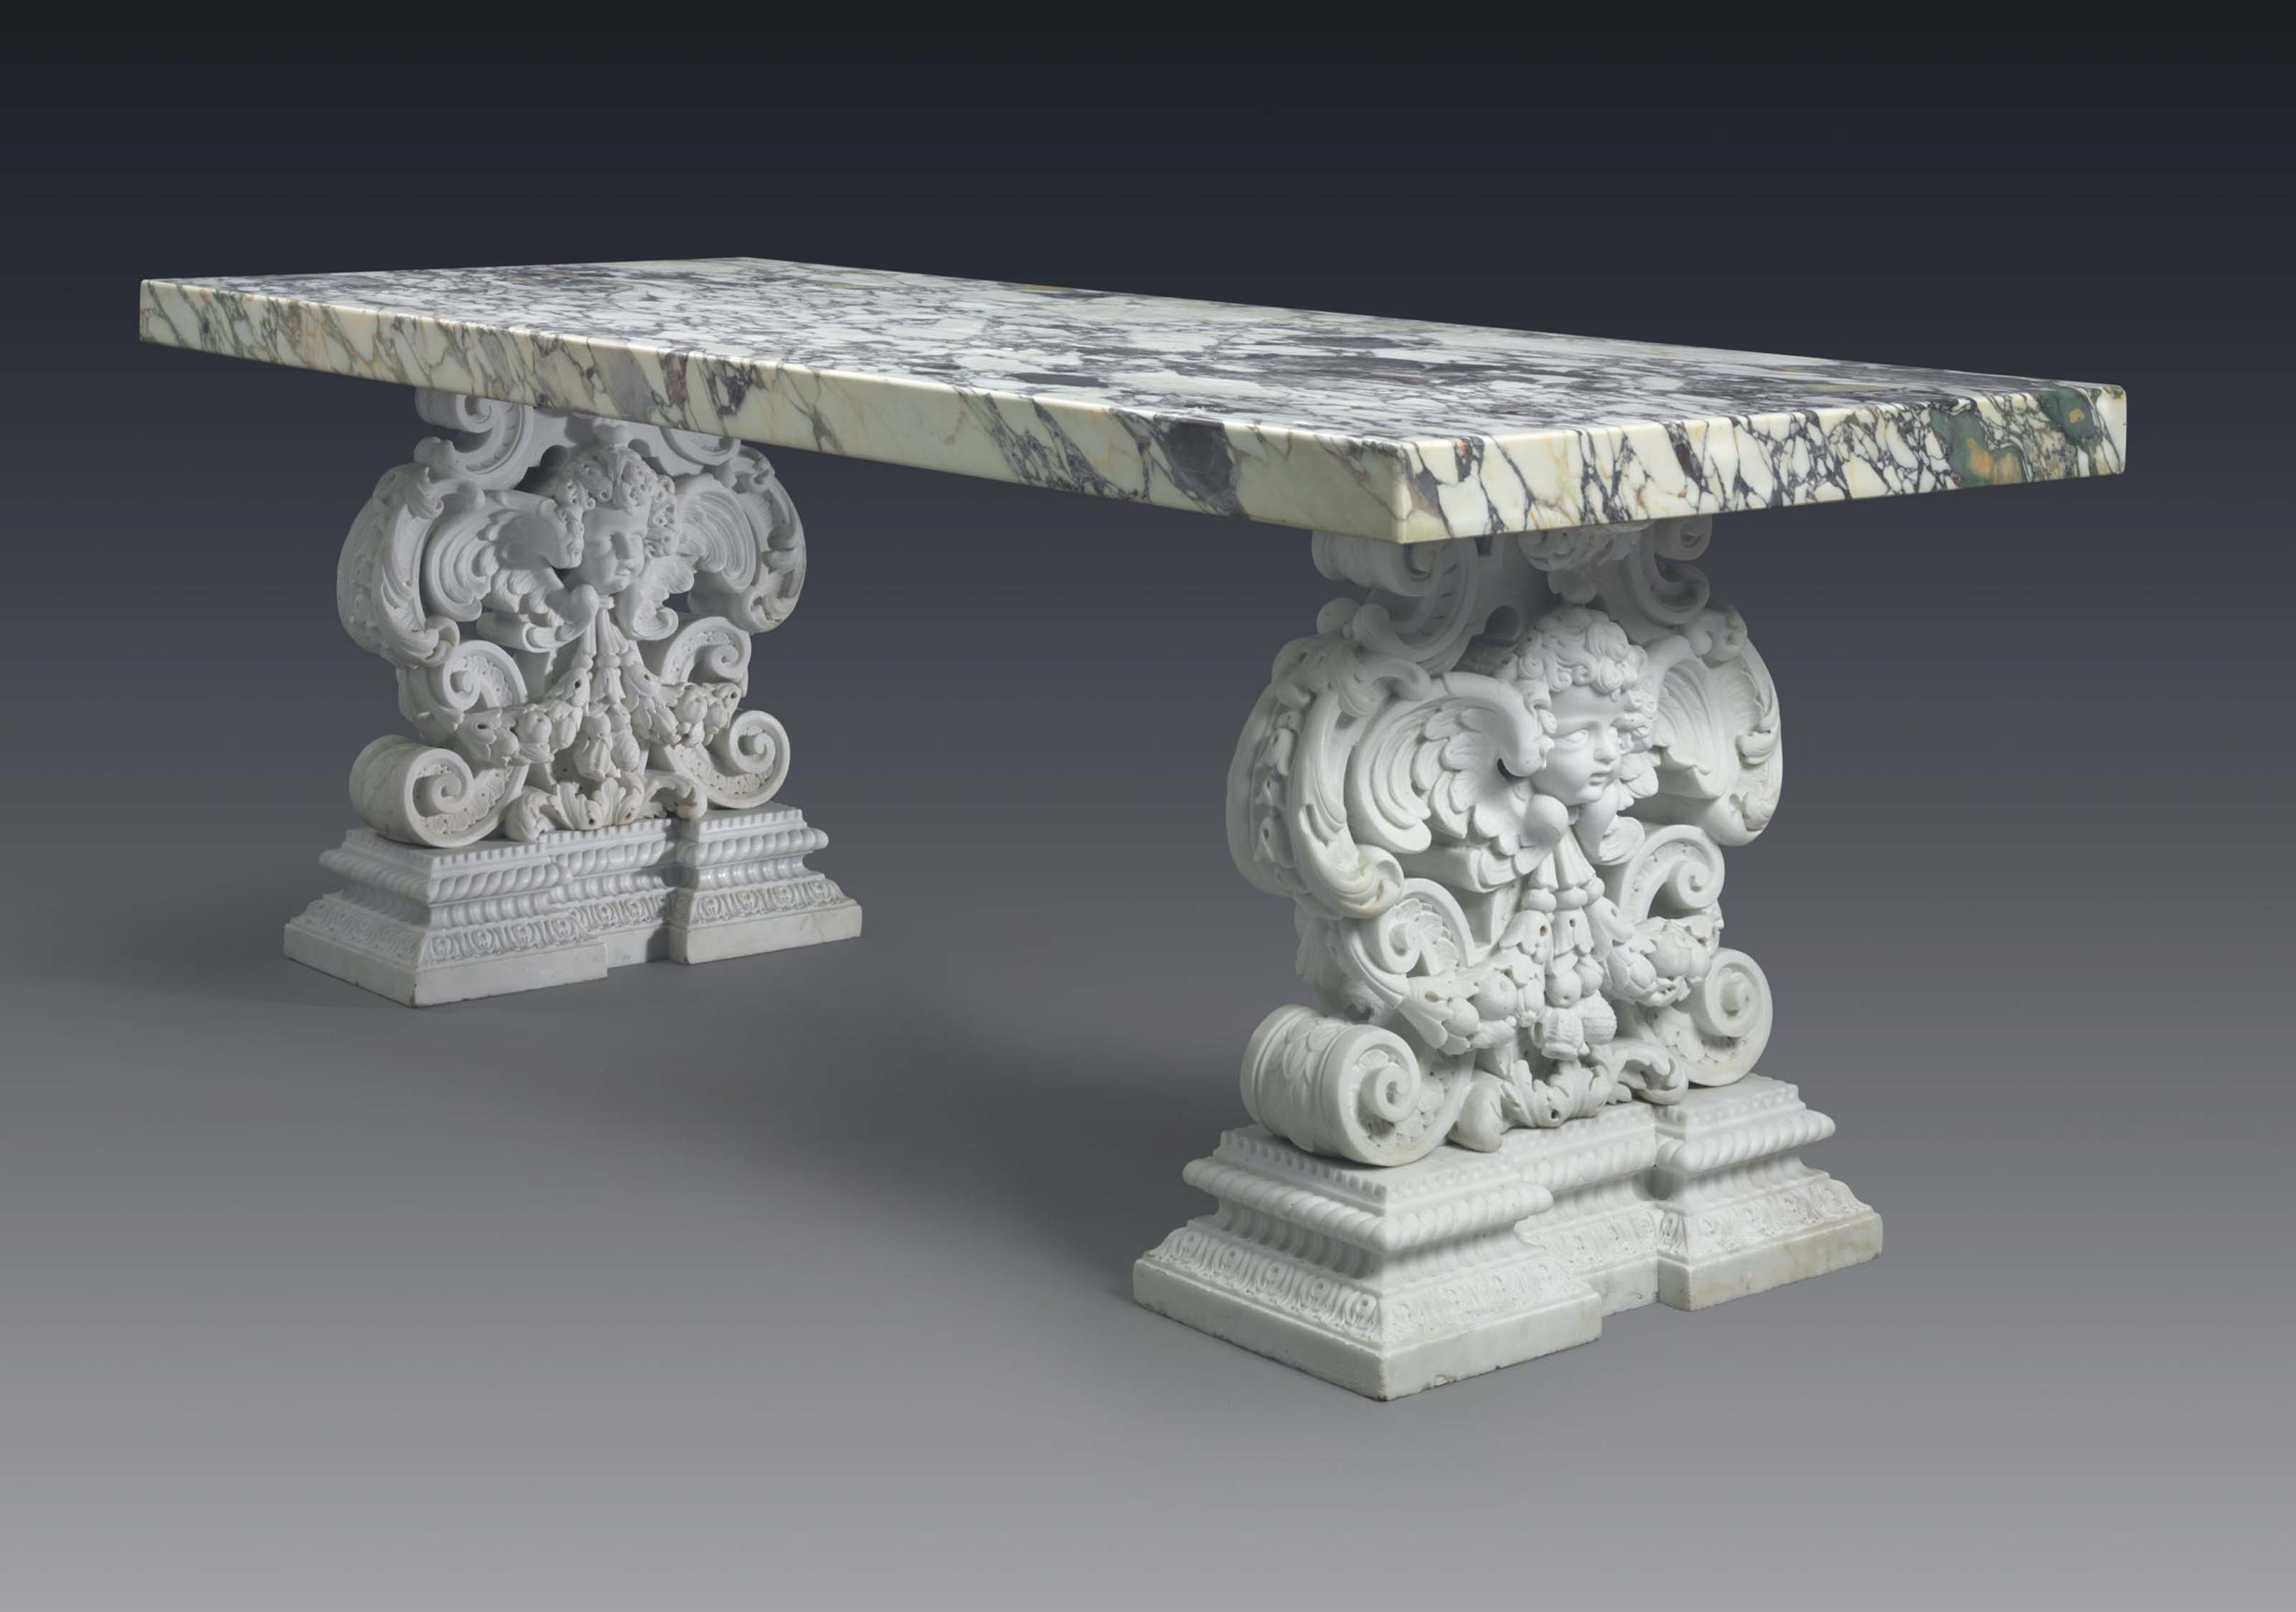 A LARGE AMERICAN WHITE AND BRECHE VIOLETTE MARBLE CENTER TABLE